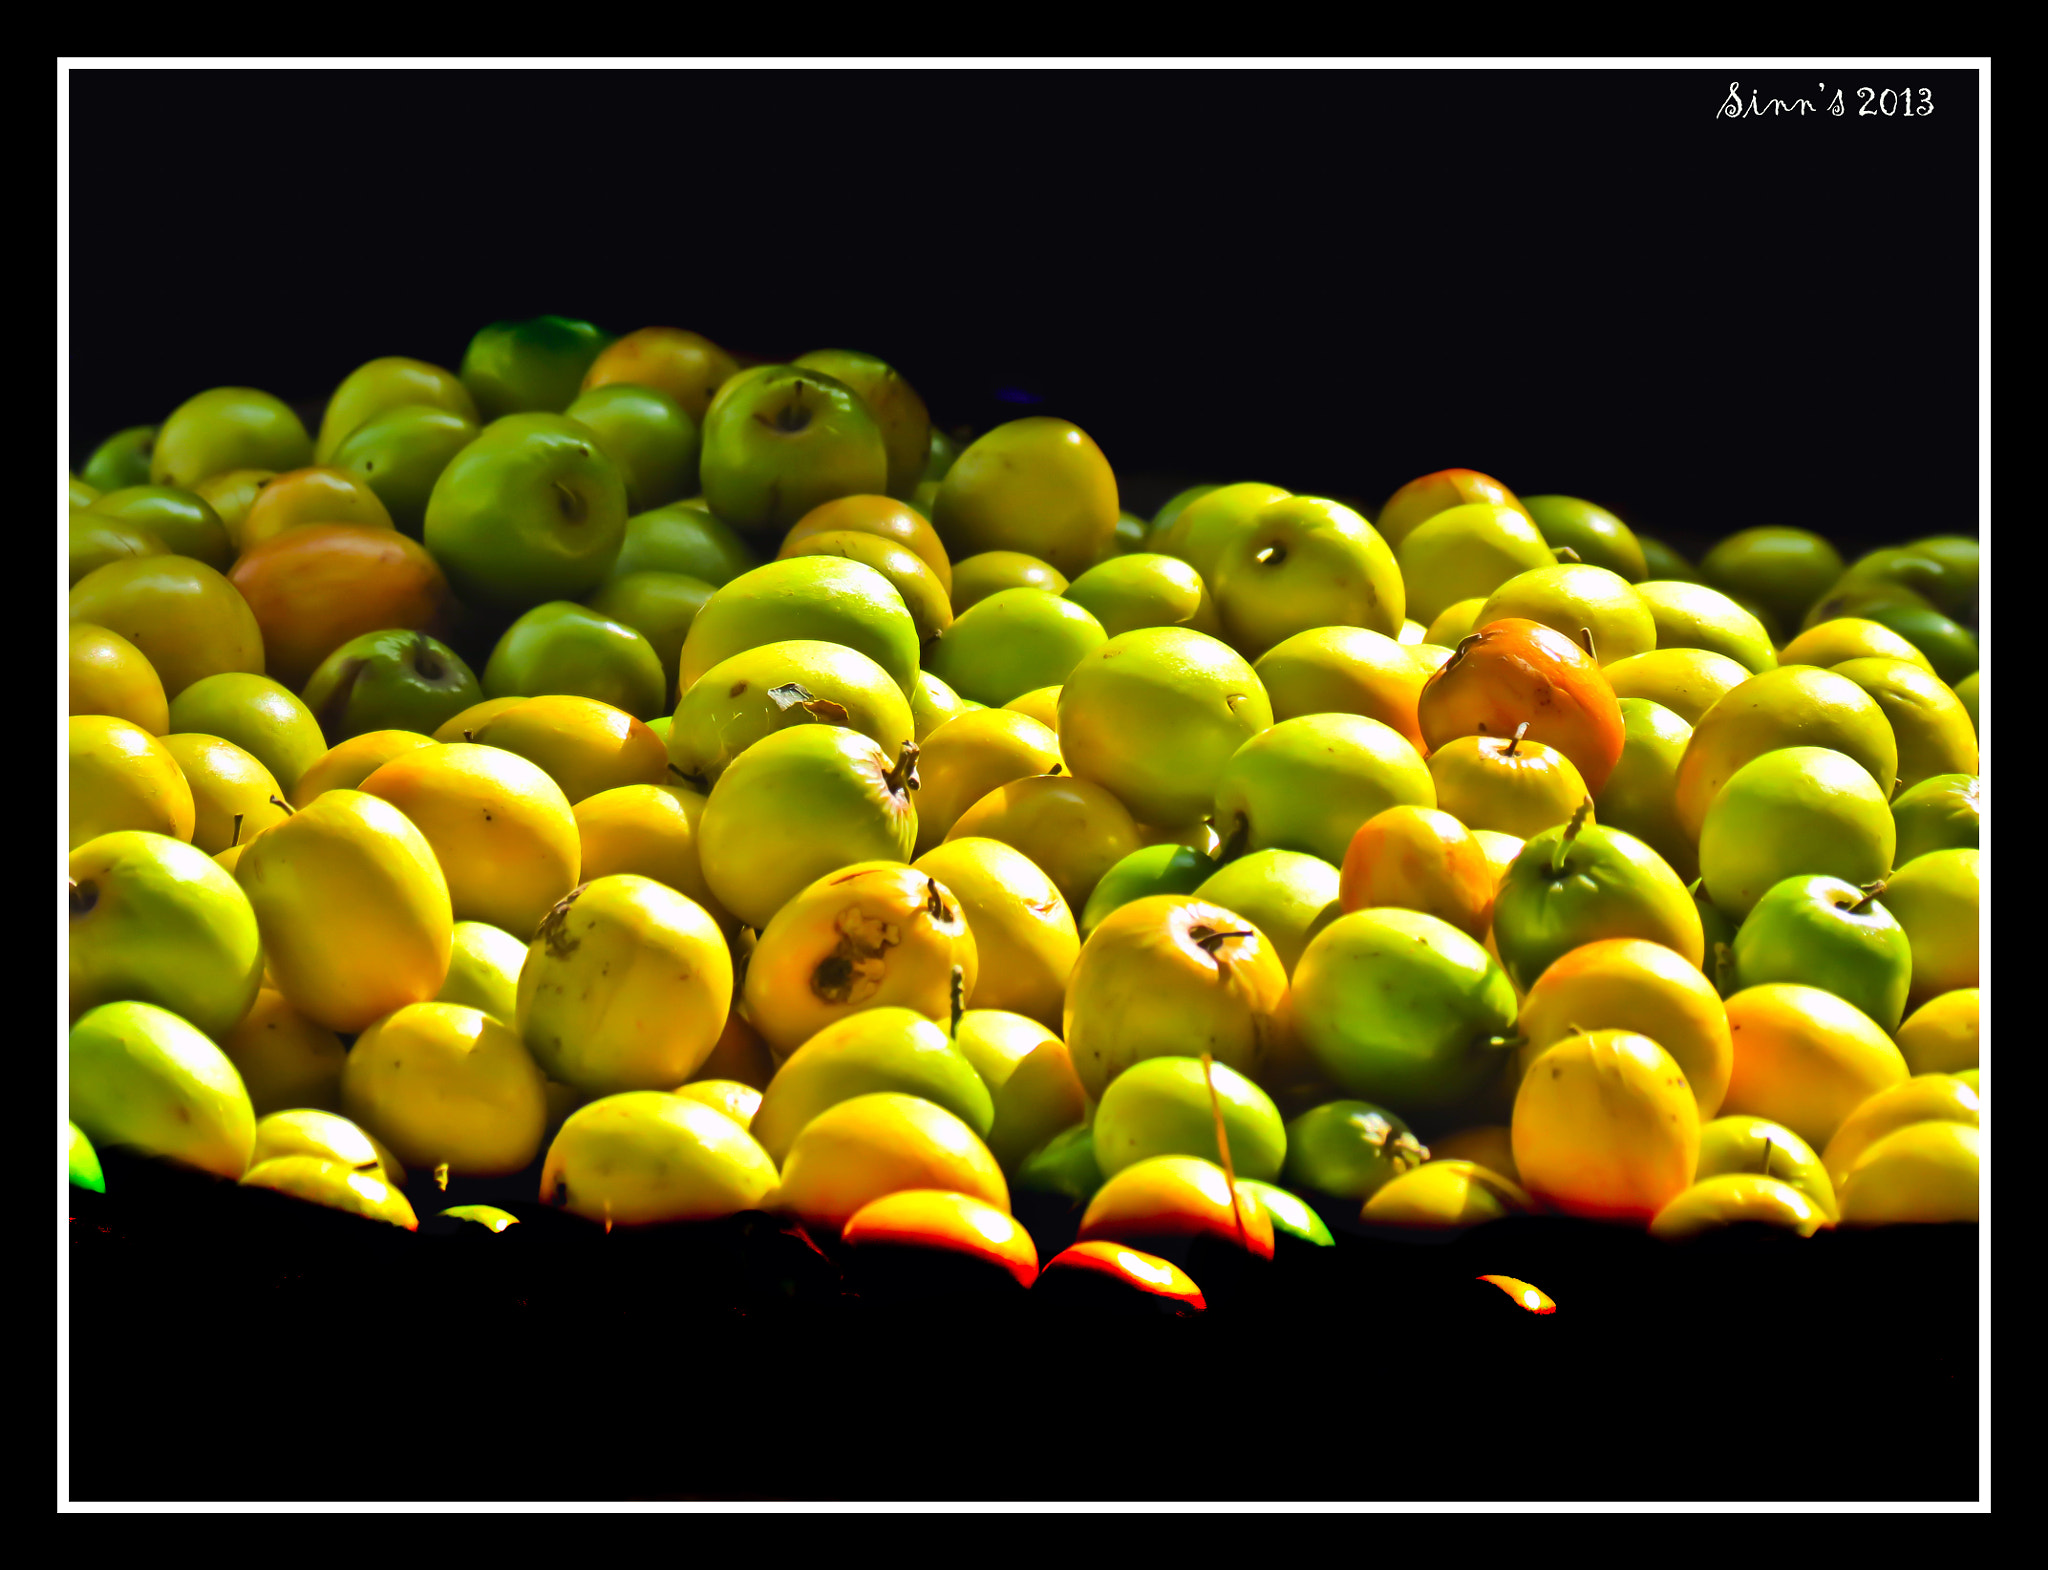 Photograph Sweet Green by Sinu Nair on 500px